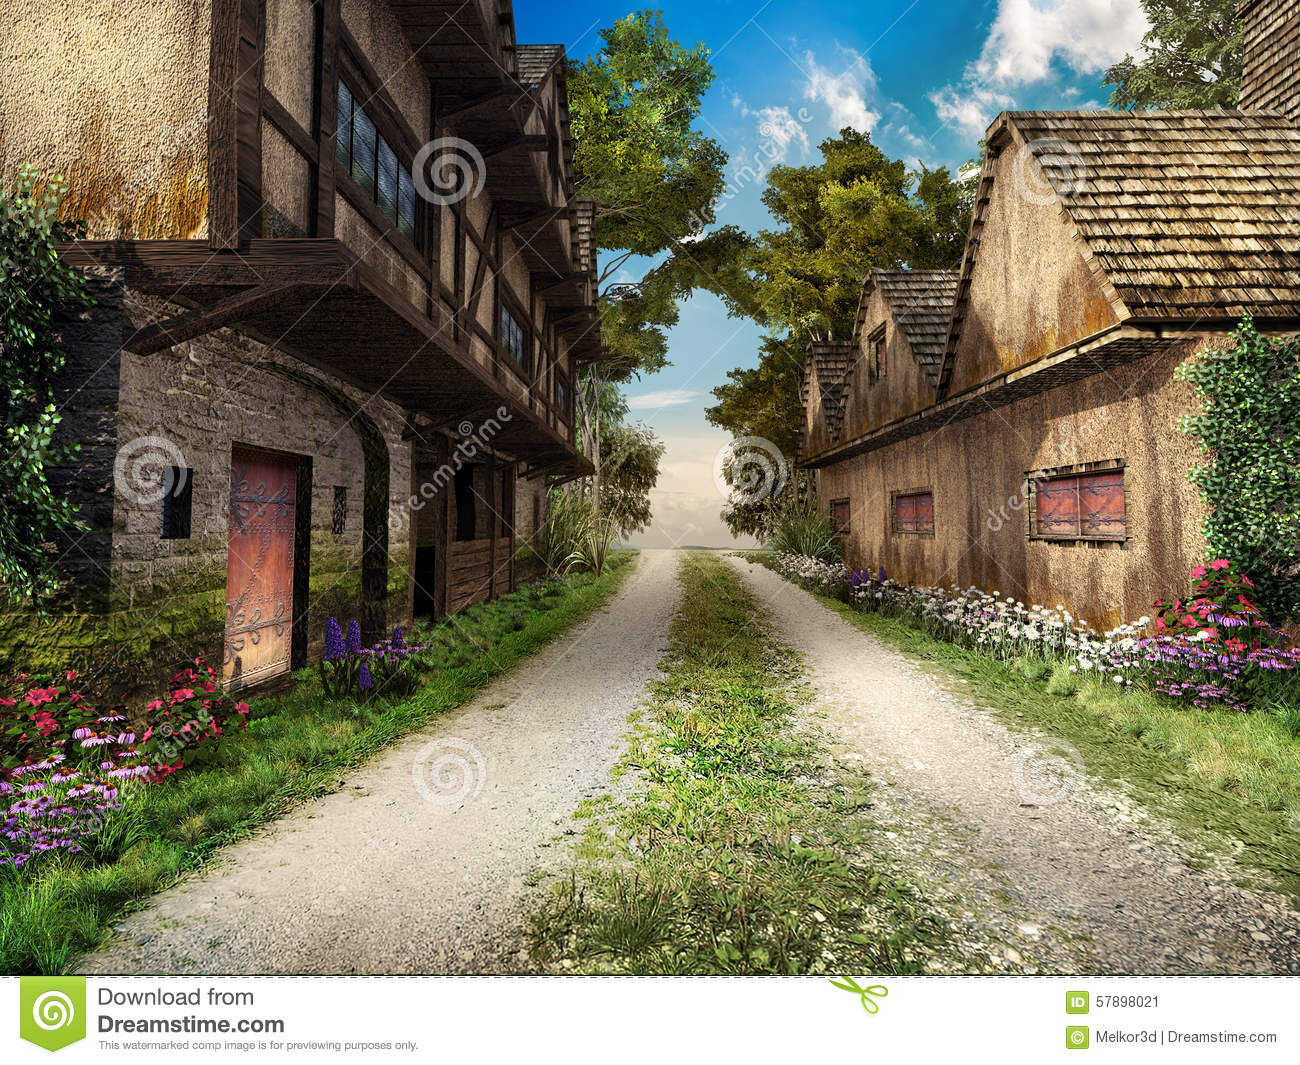 Old medieval town clipart clipground for Village town